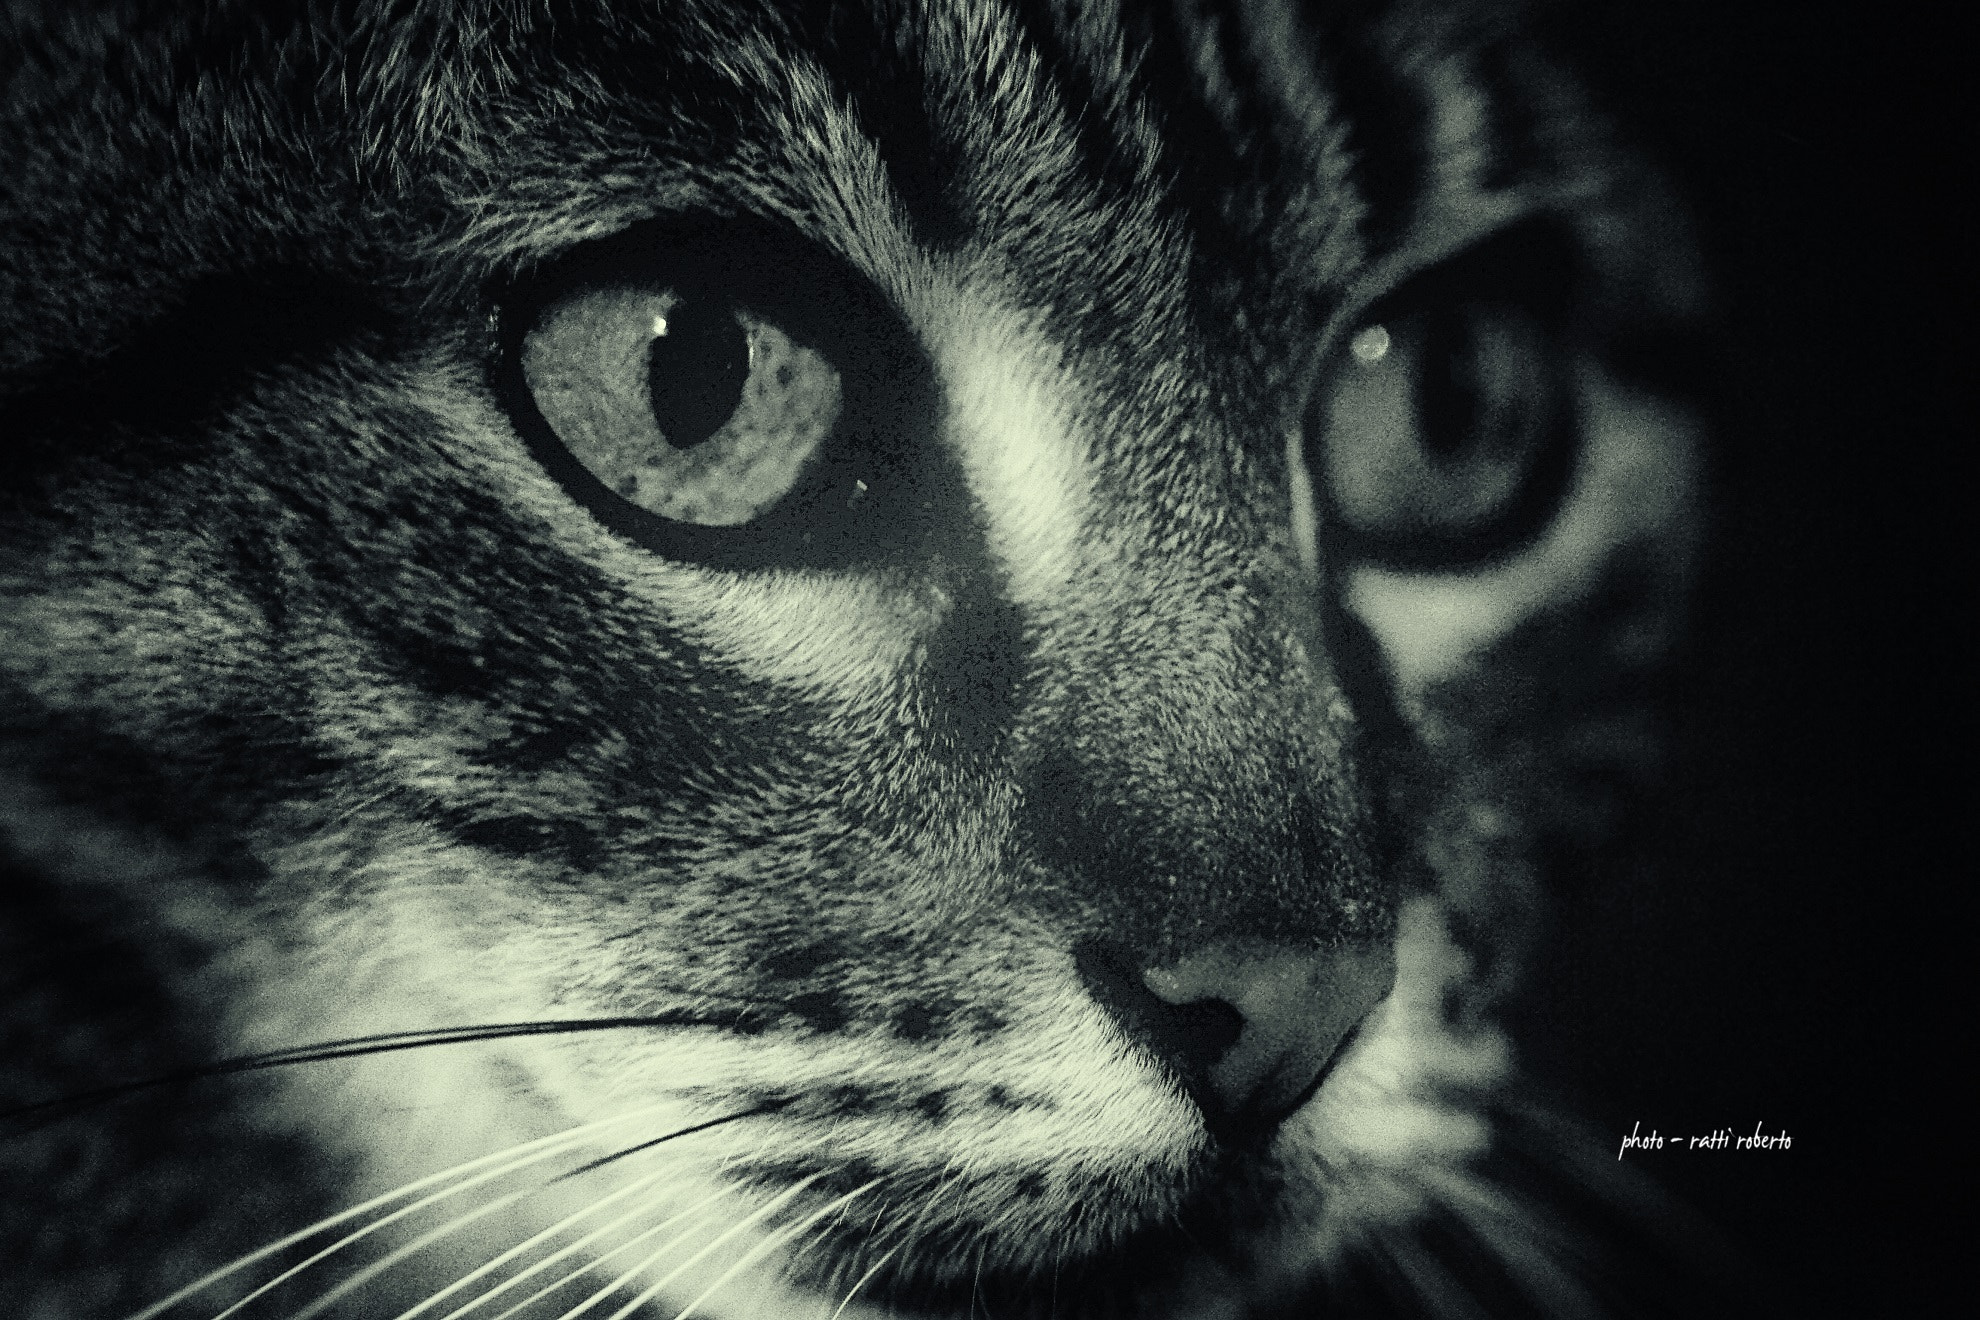 Photograph cats by Ratti Roberto on 500px